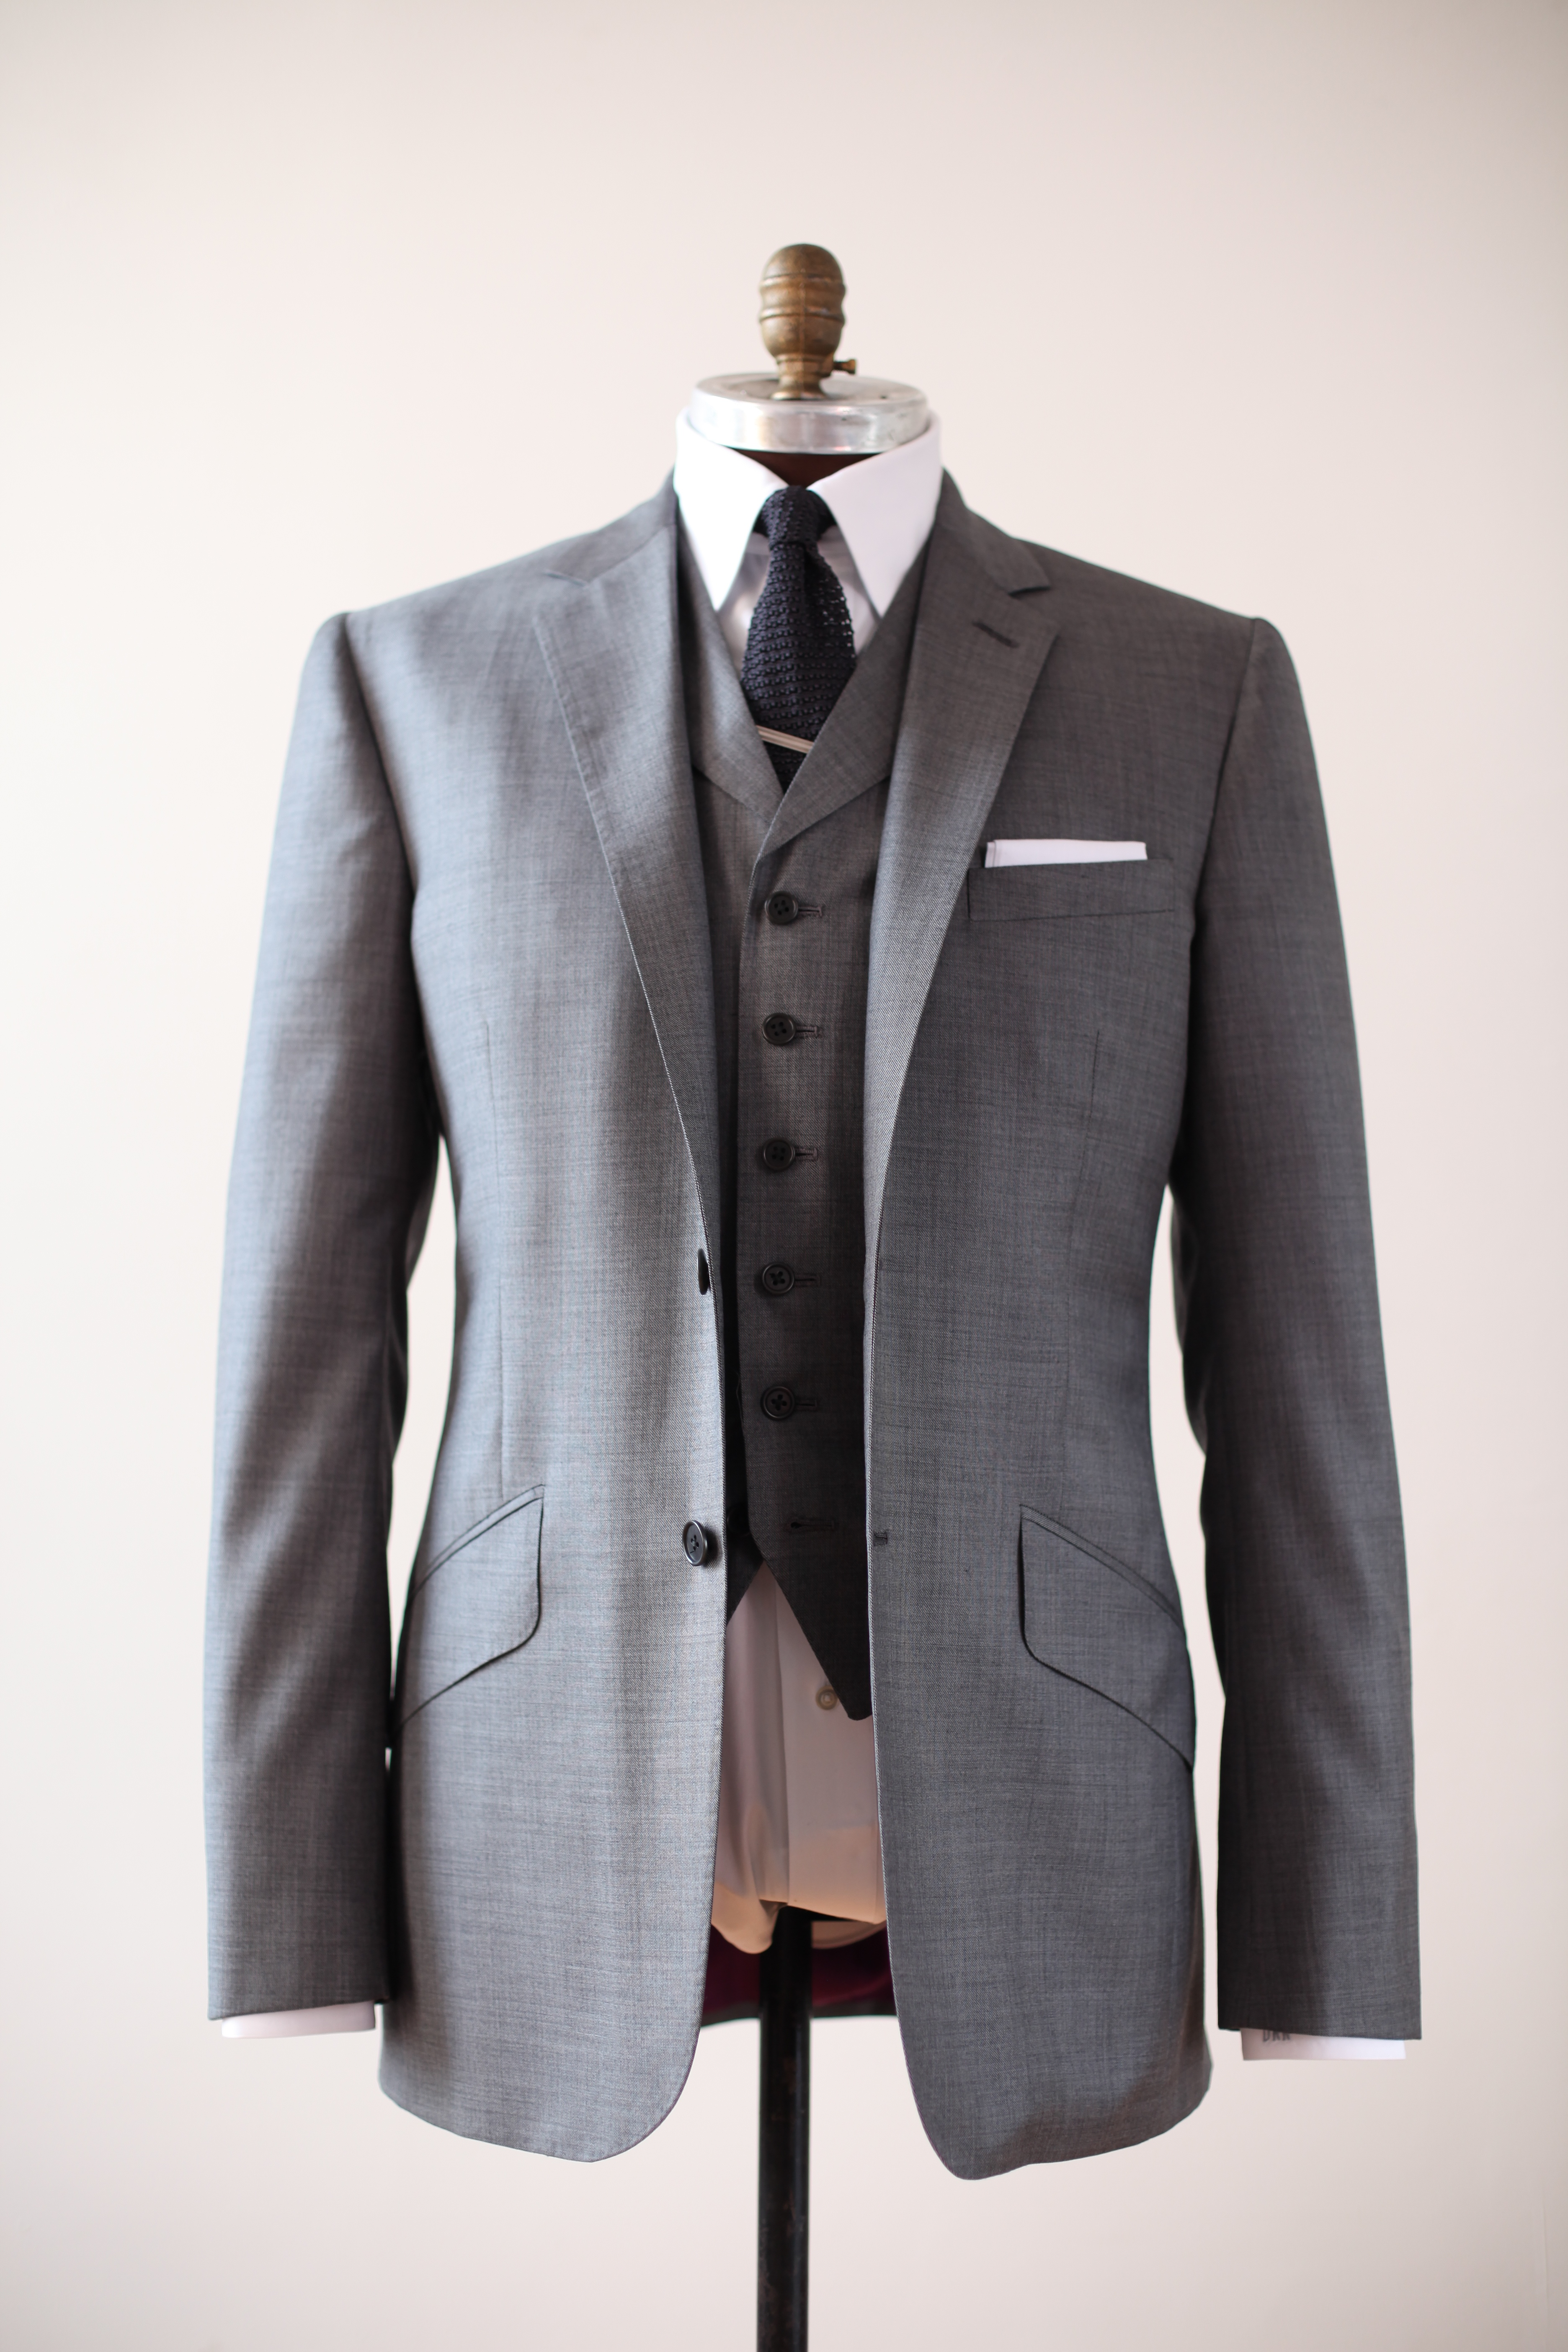 bespoke suits a reeves bespoke suit starts at $4000 with a 50% deposit to start dusosjm